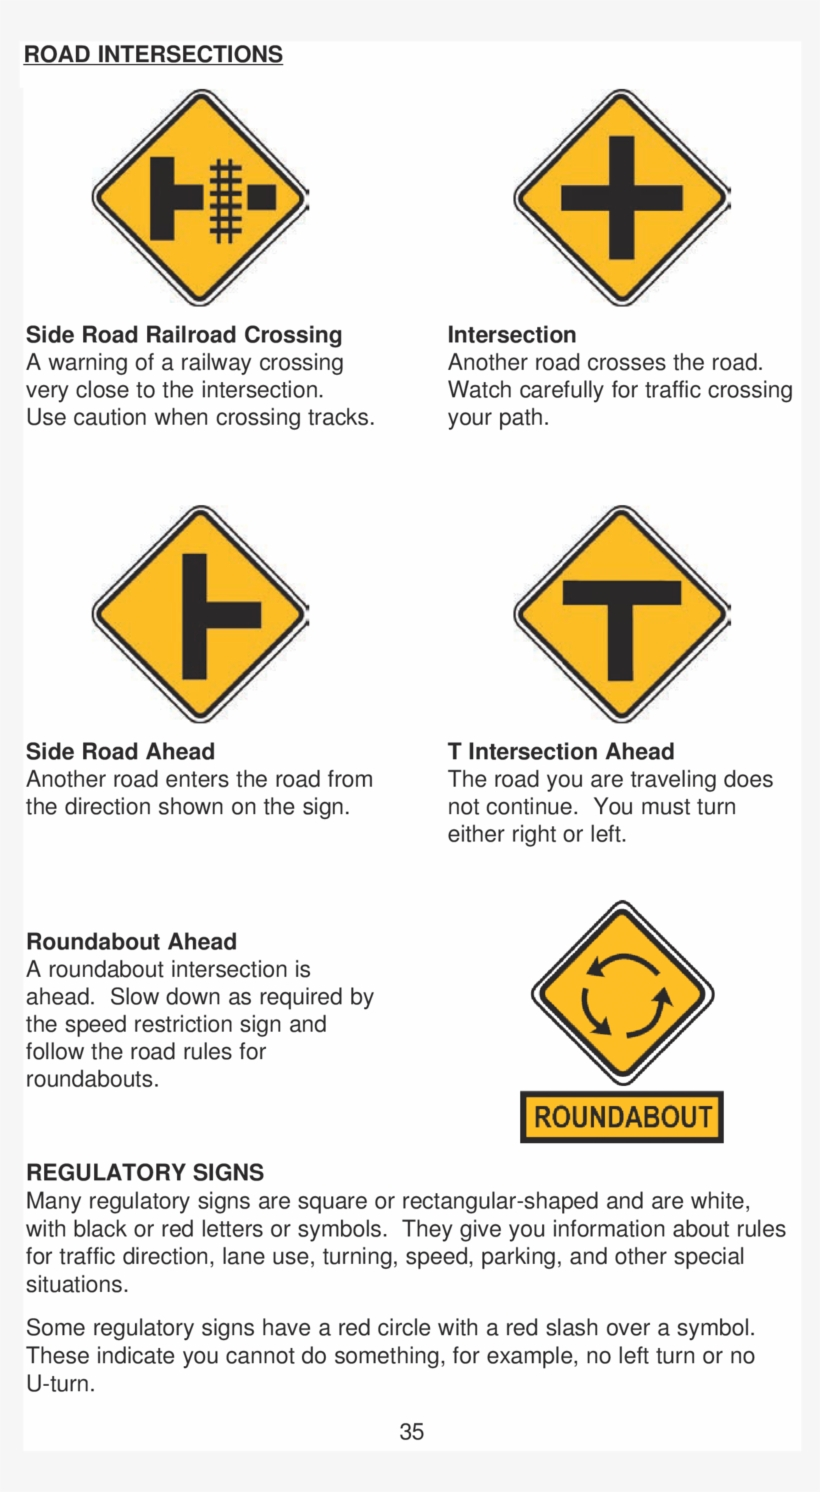 Road Intersections Side Road Railroad Crossing A Warning - Three-way Junction, transparent png #5694030